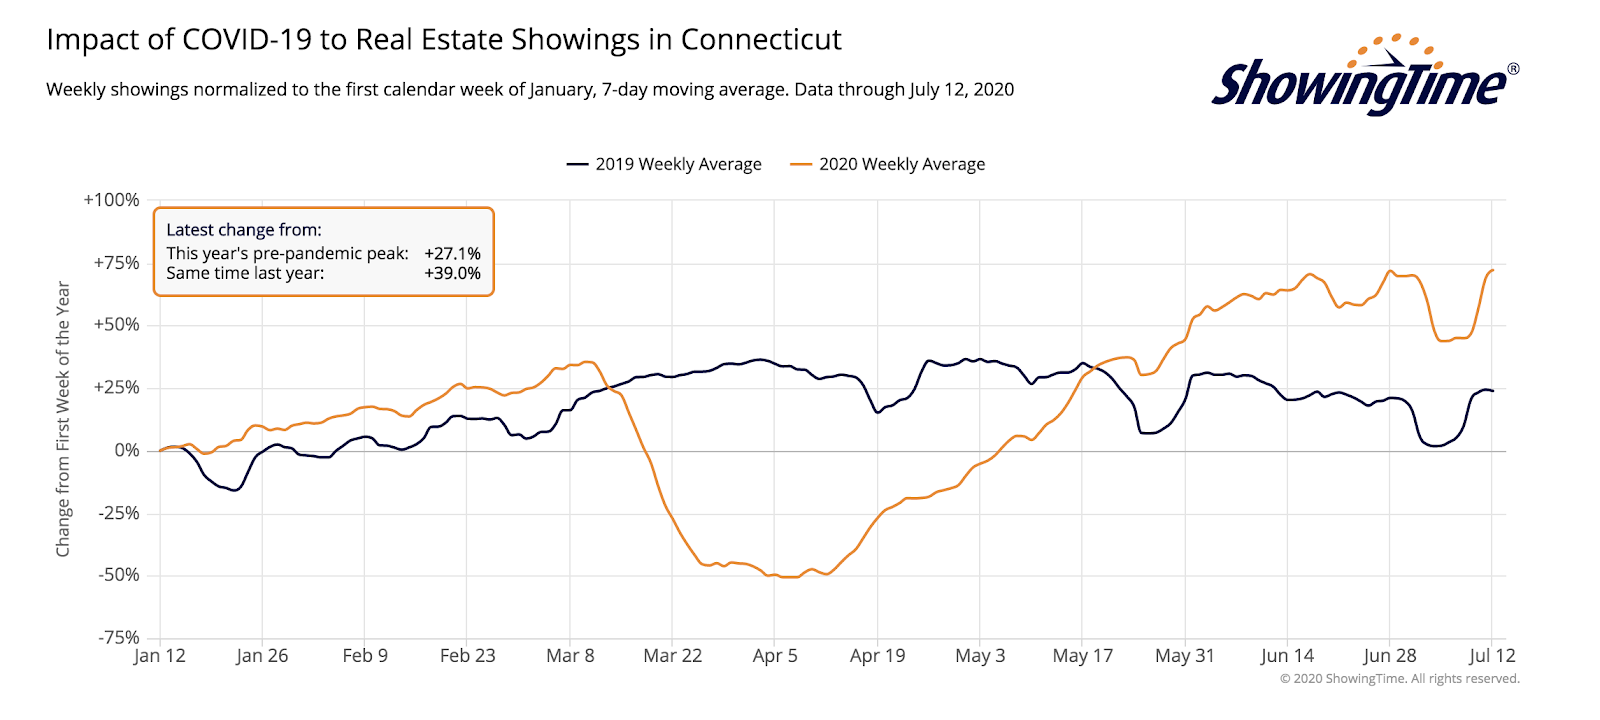 number of real estate showings in Connecticut